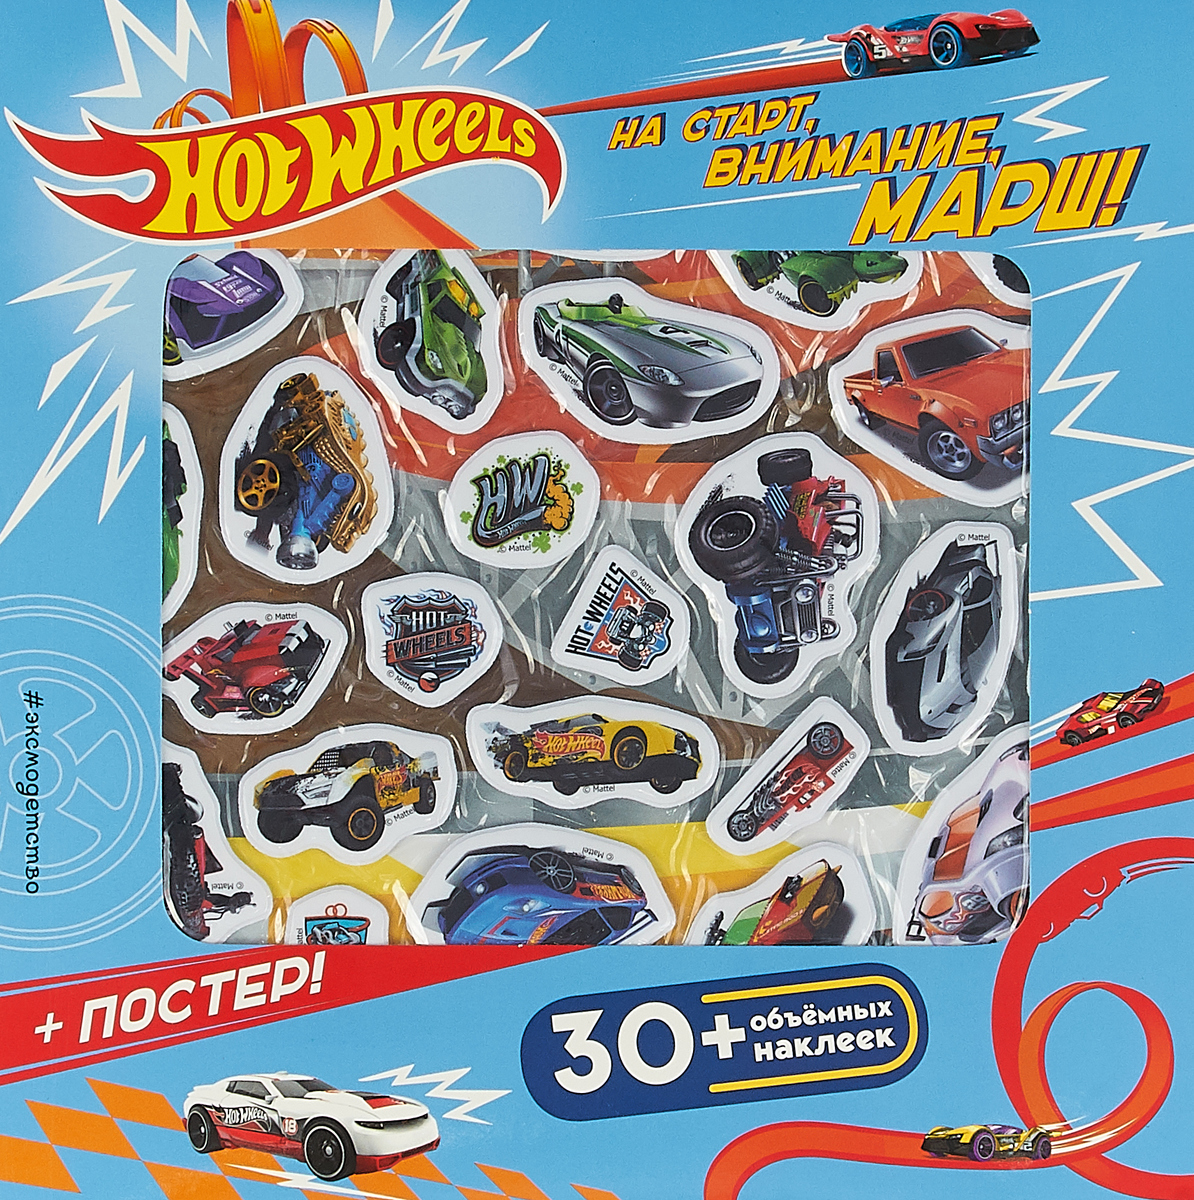 Hot Wheels. На старт, внимание, марш! (+ плакат и 3D наклейки) hot wheels на старт внимание марш плакат и 3d наклейки